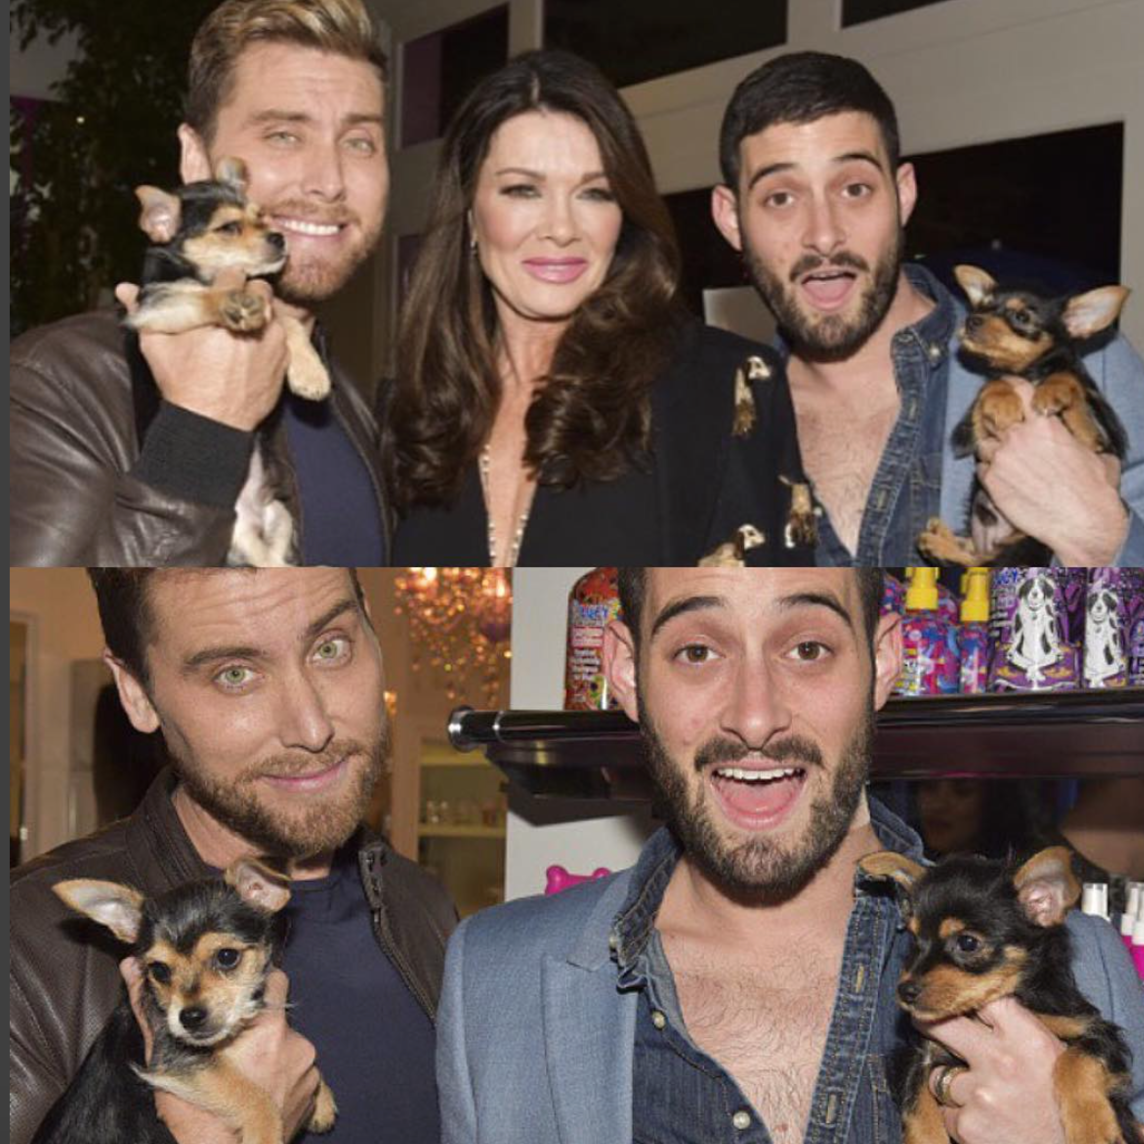 How could you not fall in love with our rescues, Chip & Dale! Lance Bass and his husband, Michael Turchin were the real Rescue Rangers as they adopted these beautiful pups. They are certainly in good hands and we can't wait to see them again soon at Vanderpump Dogs as Michael & Lance are on our Awareness Ambassador Committee.